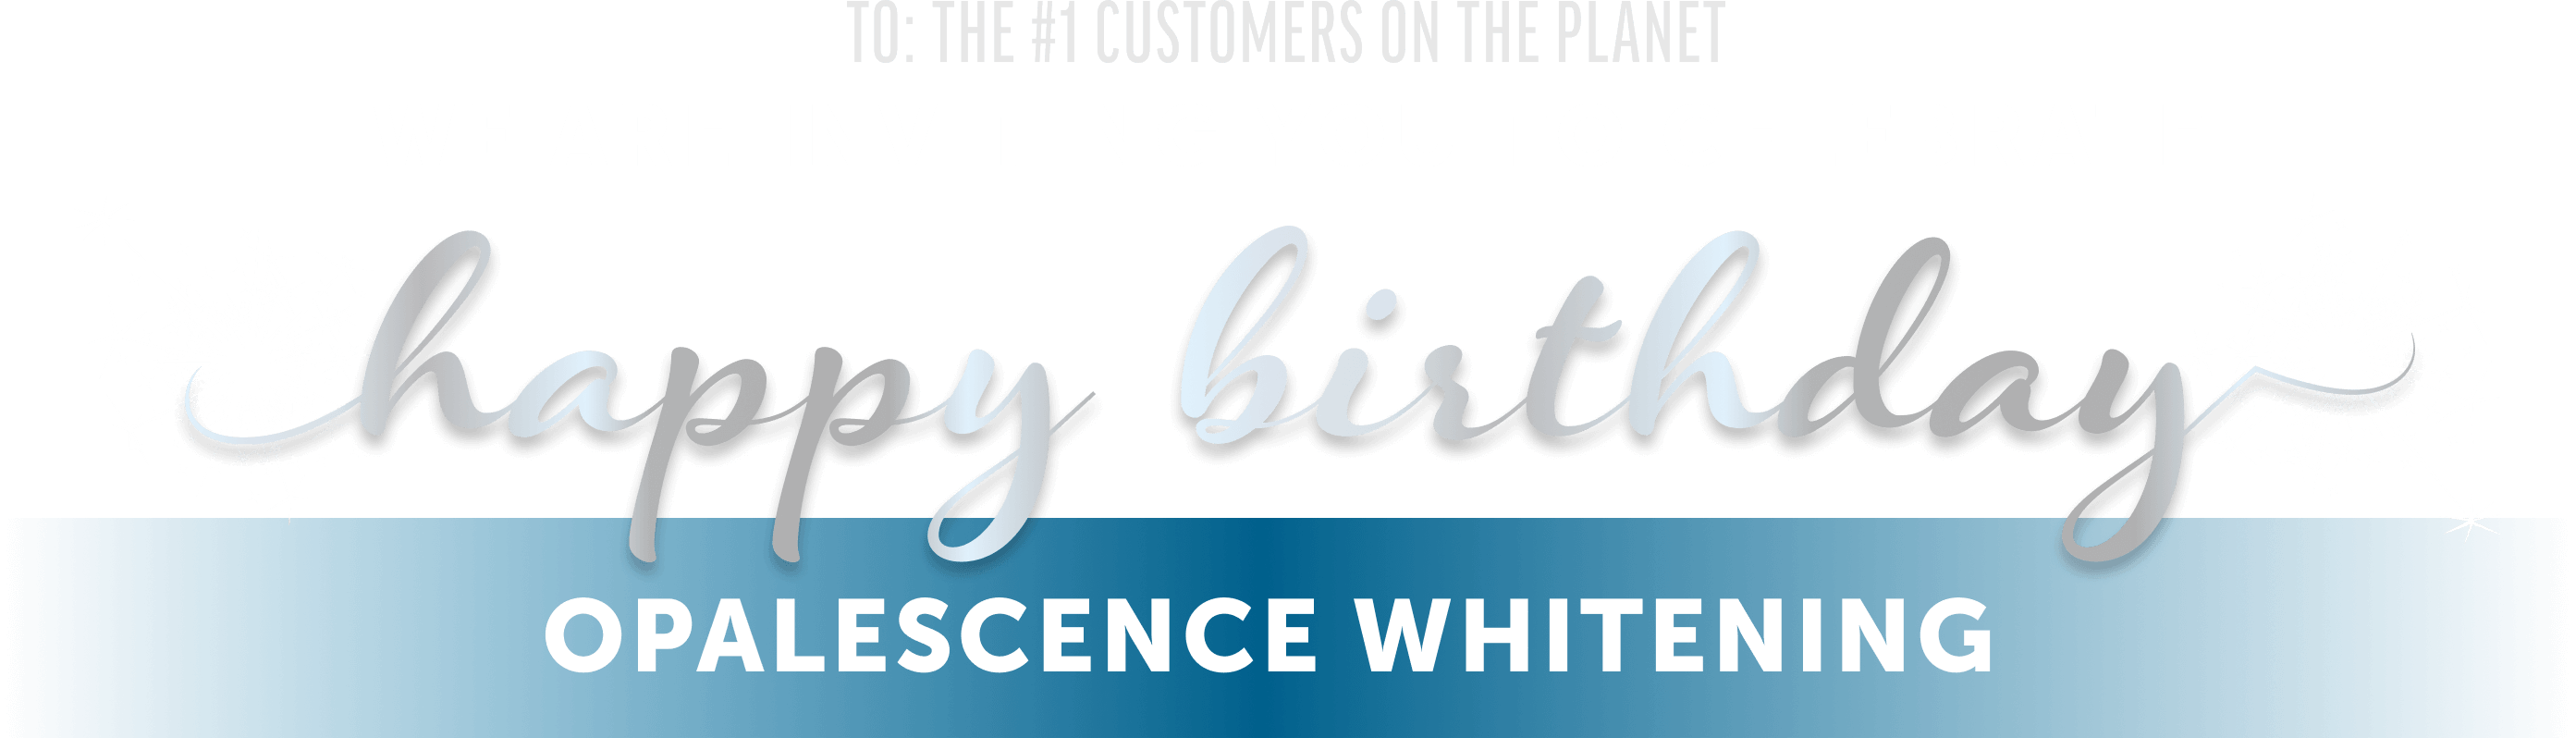 To: #1 Custeromes on the planet we are inviting you to celebrate Happy Birthday Opalescence Whitening